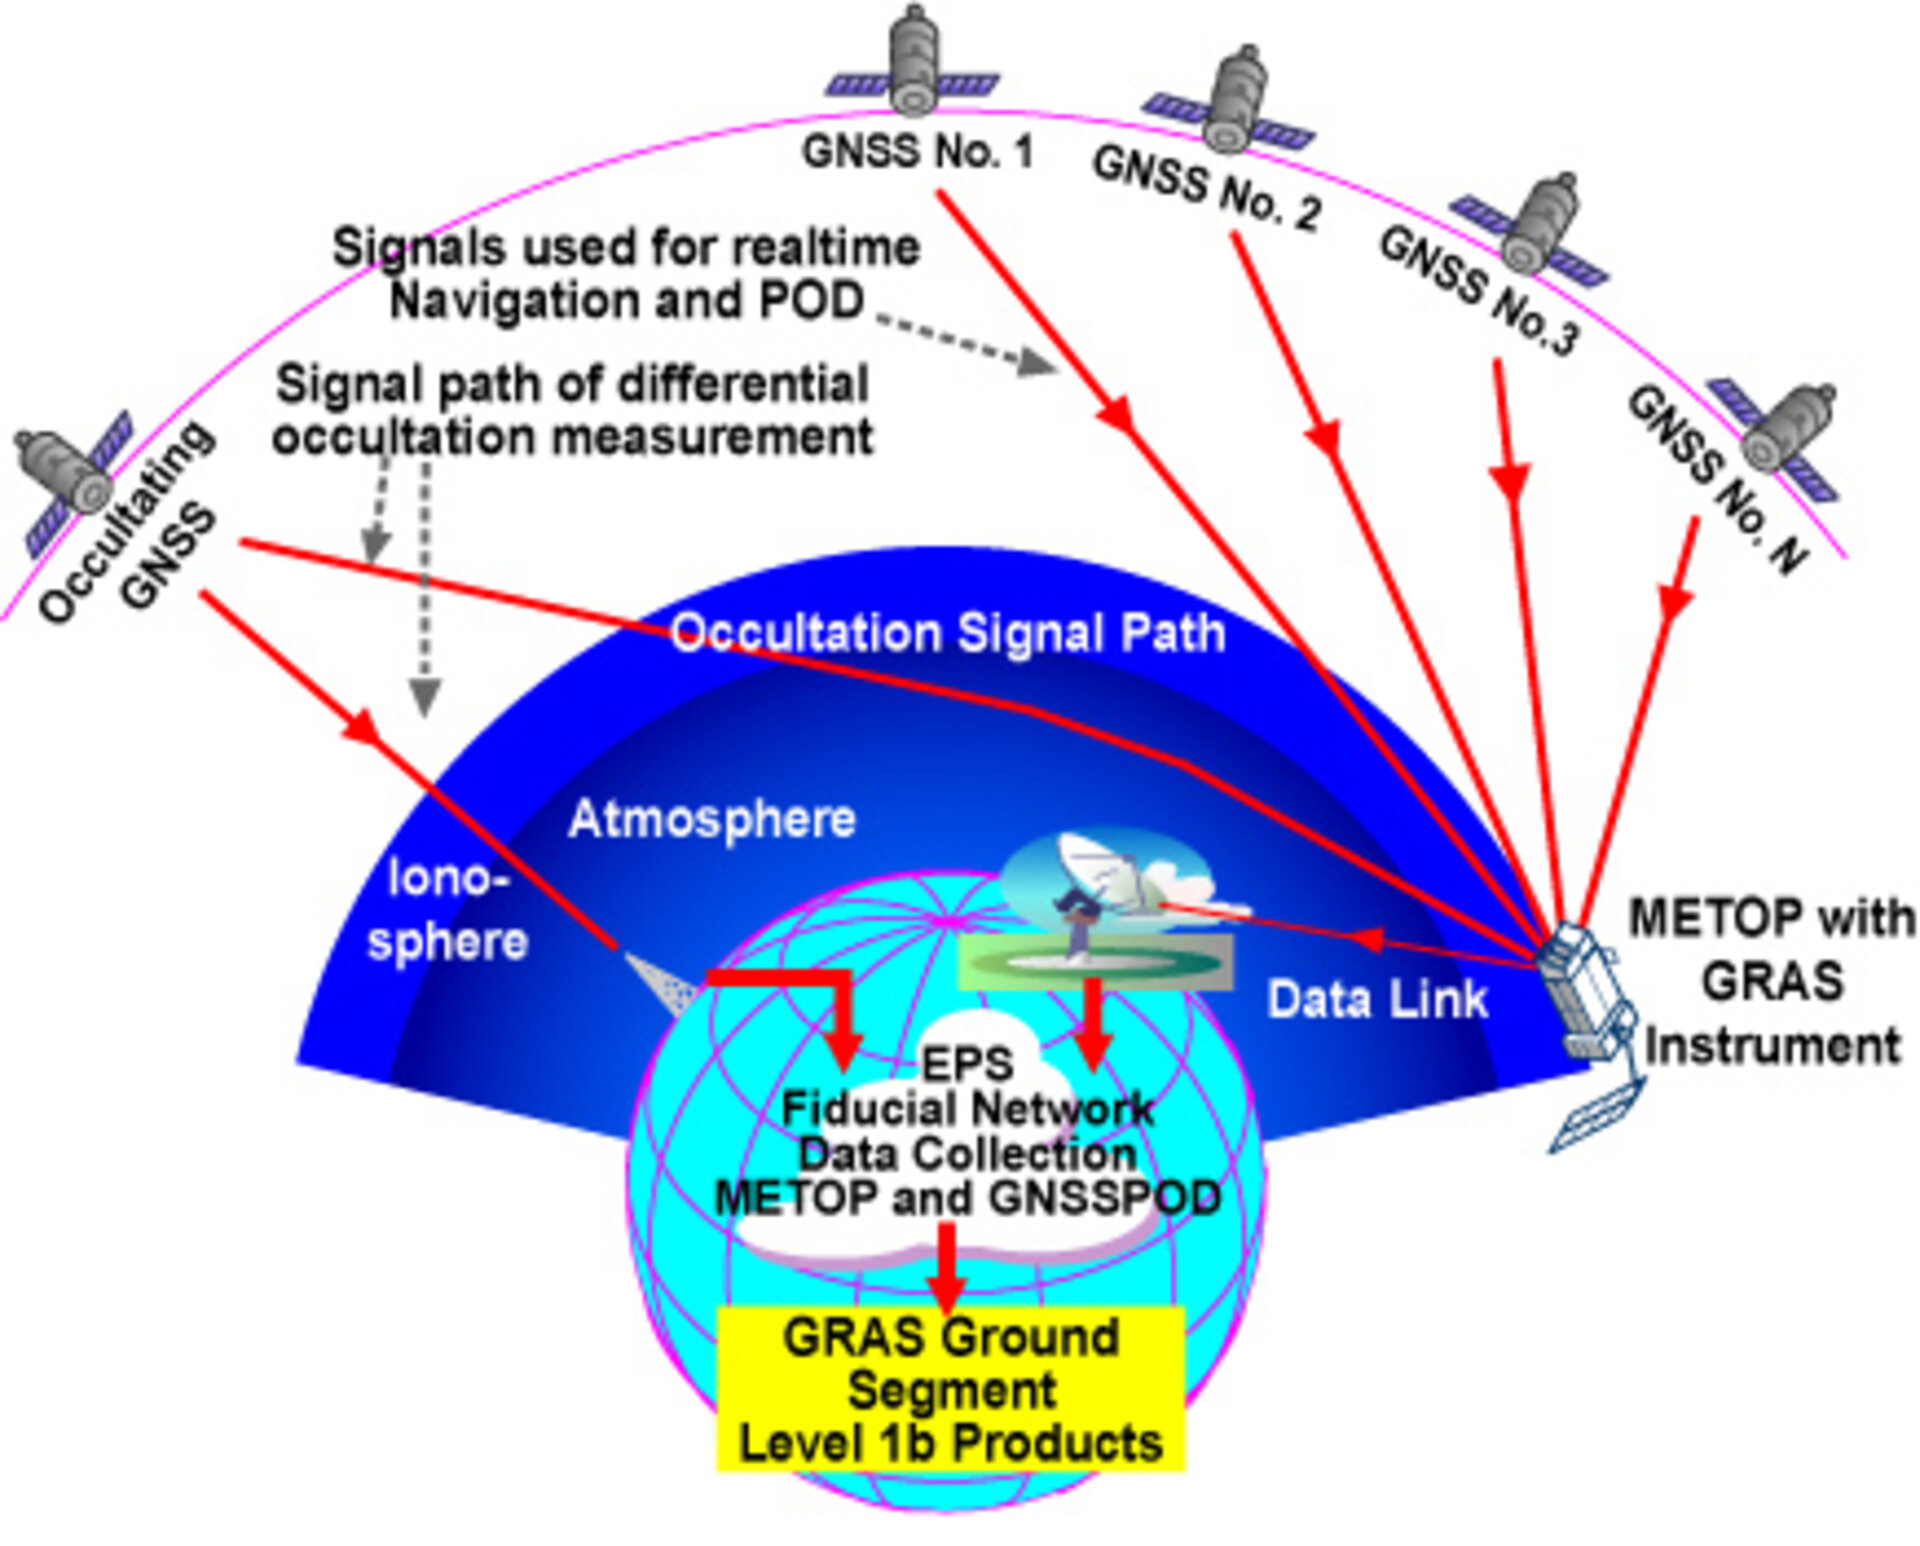 Occultation signal path